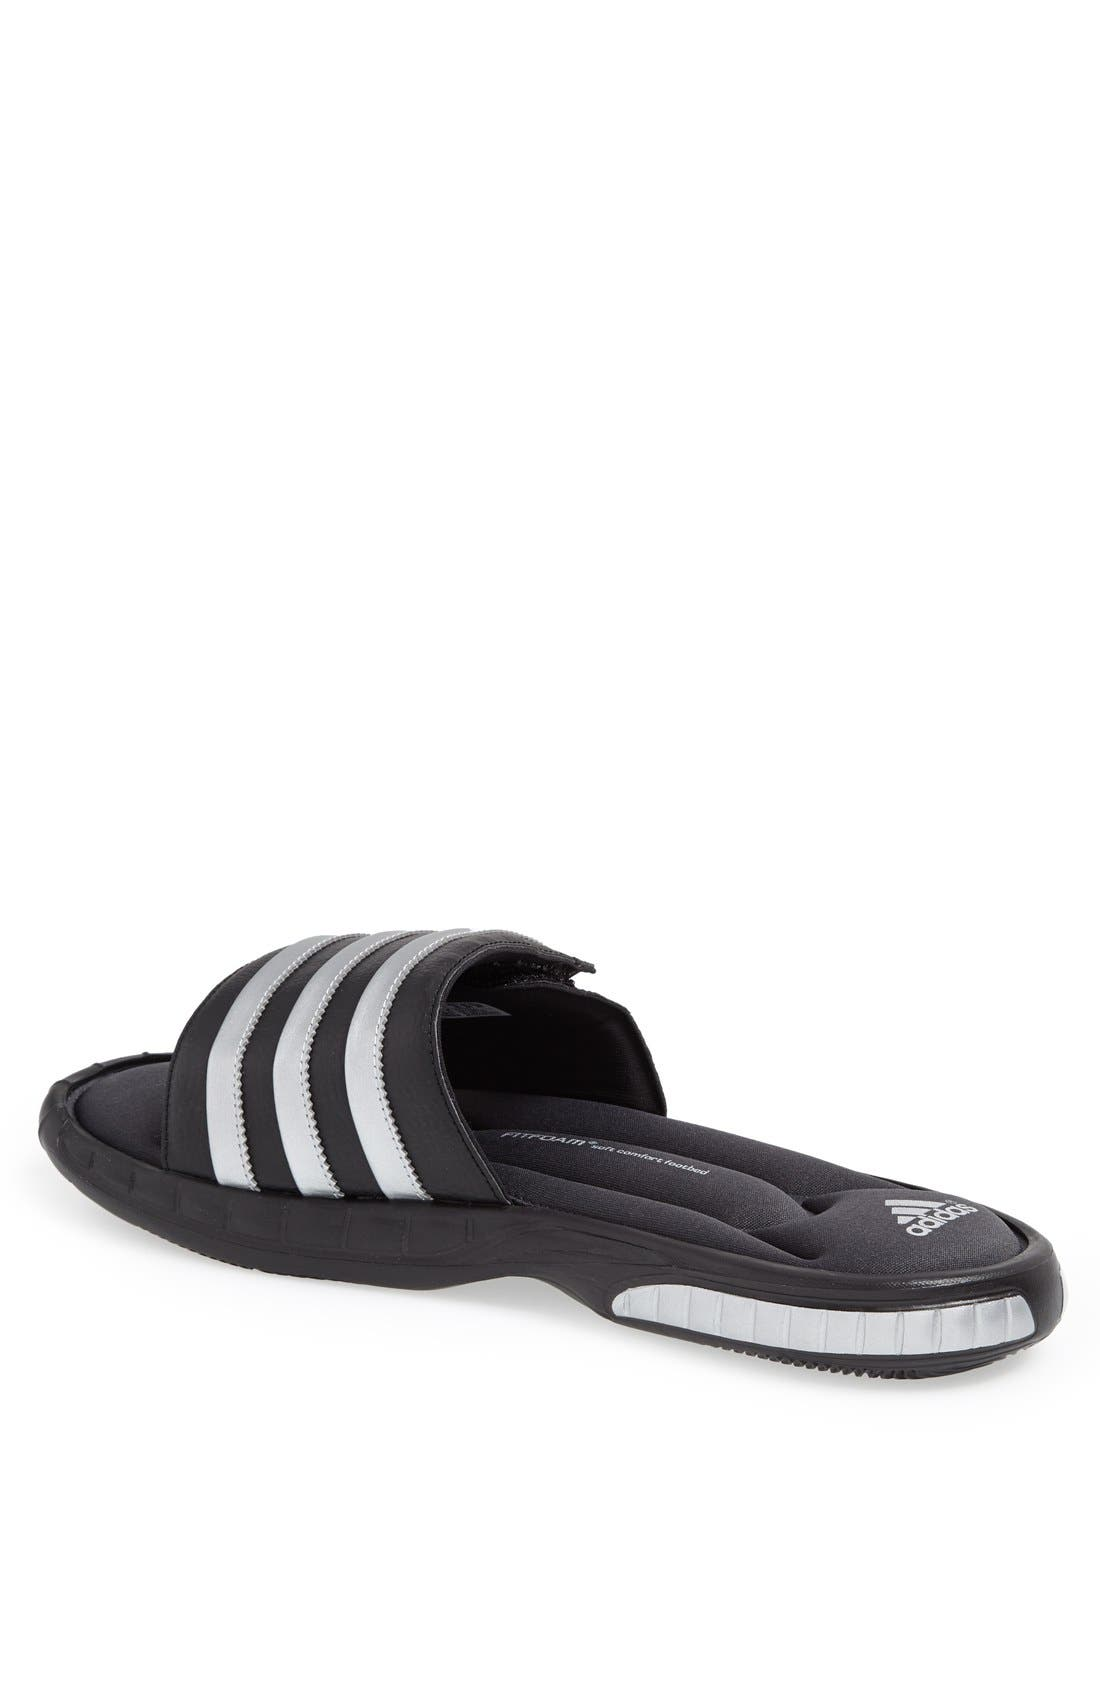 Superstar 3G Slide Sandal,                             Alternate thumbnail 2, color,                             001